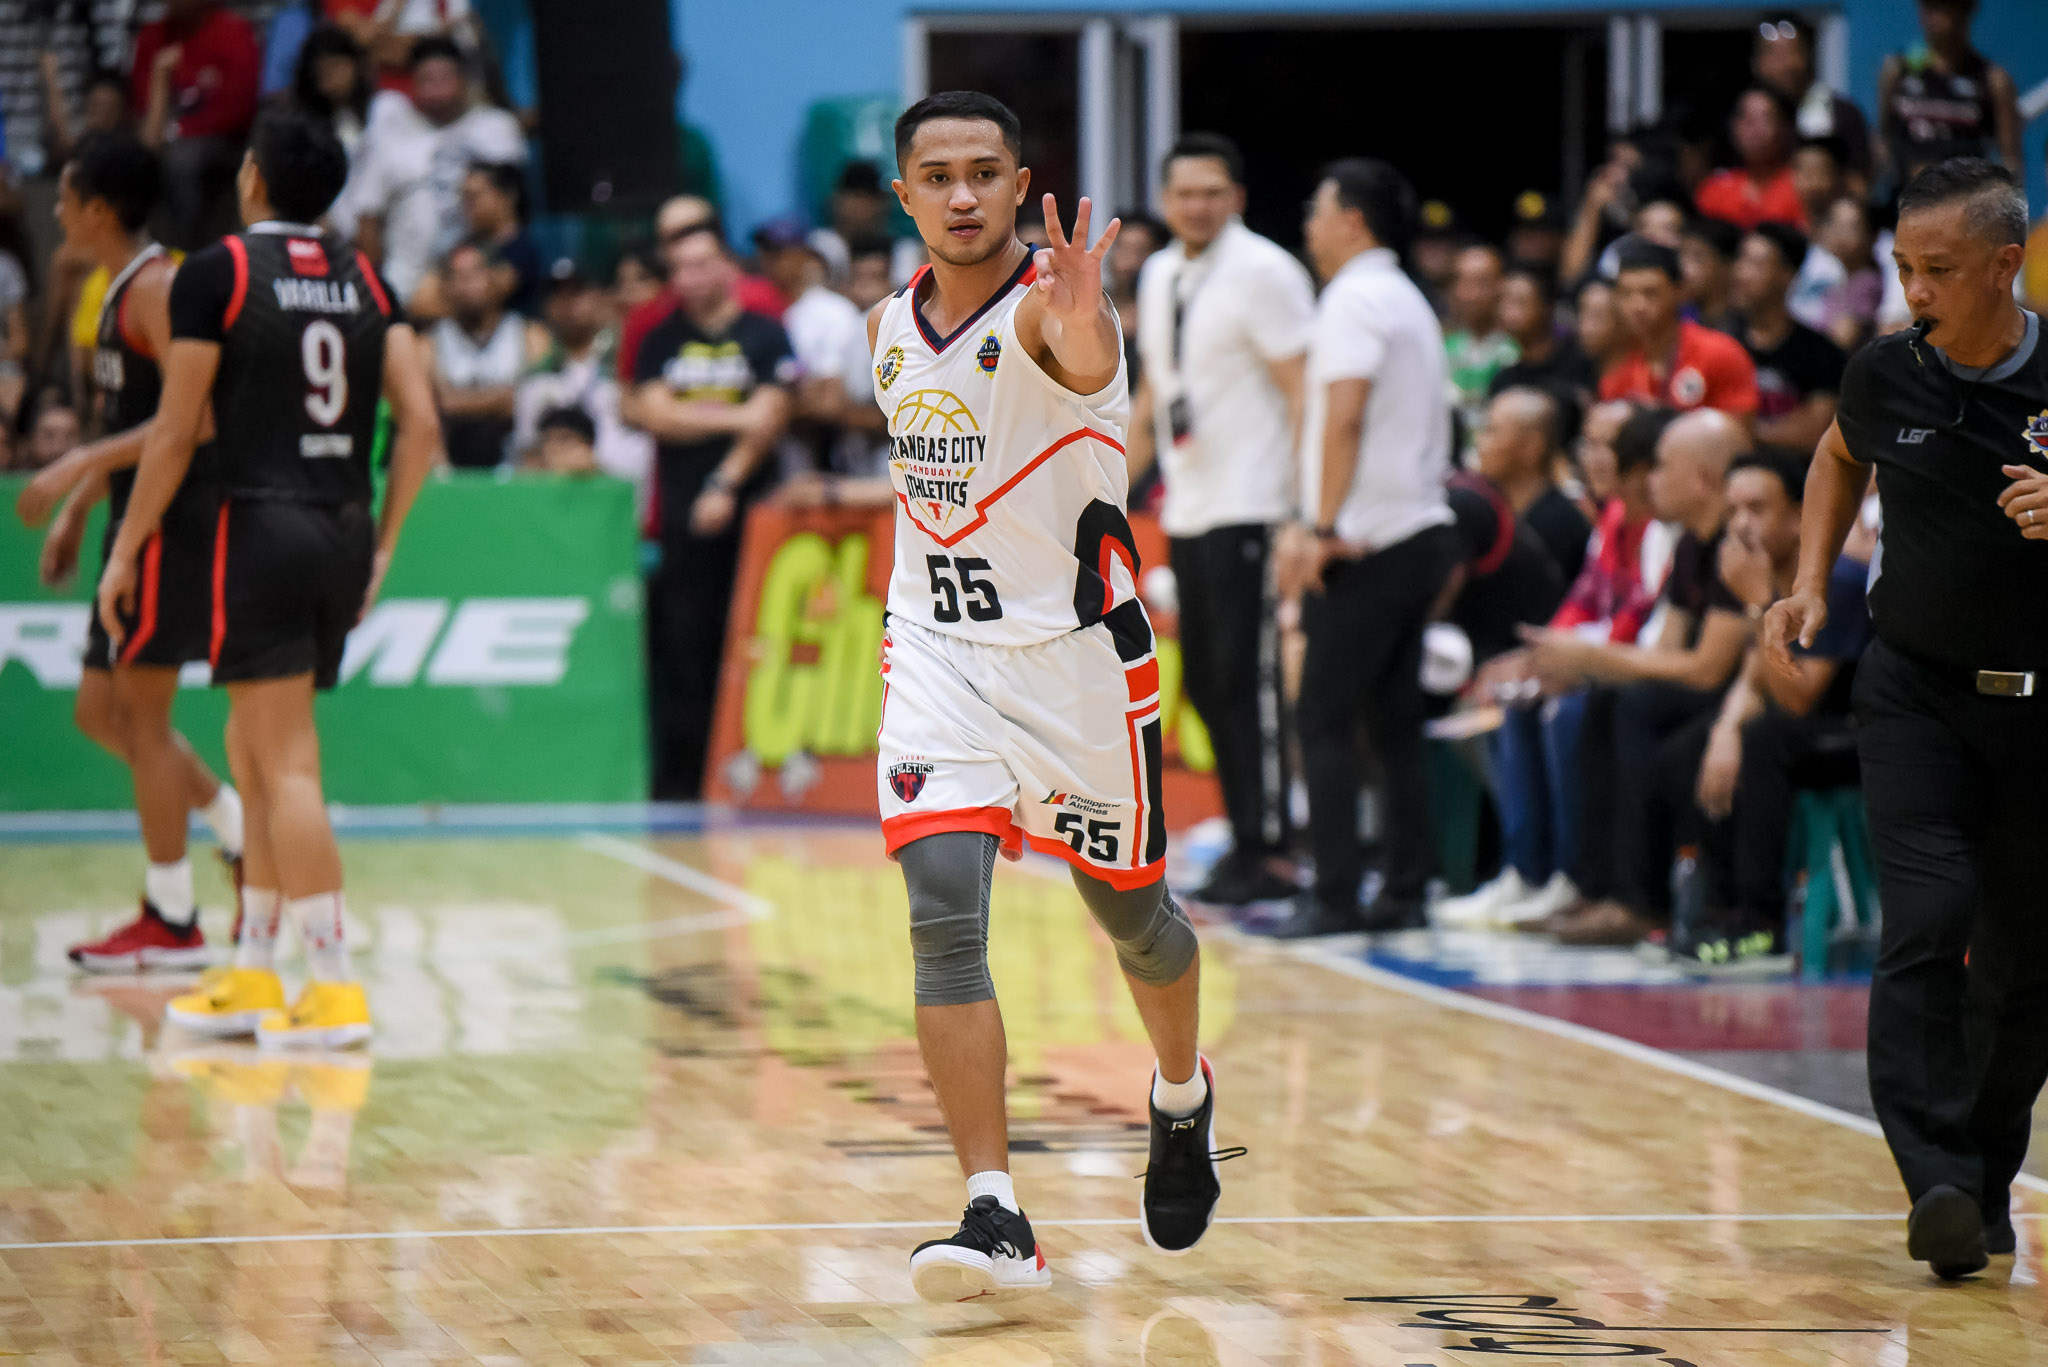 Tiebreaker Times Batangas-Tanduay embracing next man up mentality as MPBL playoffs loom Basketball MPBL News  Woody Co Ryusei Koga Batangas City-Tanduay Athletics 2019-20 MPBL Lakan Cup